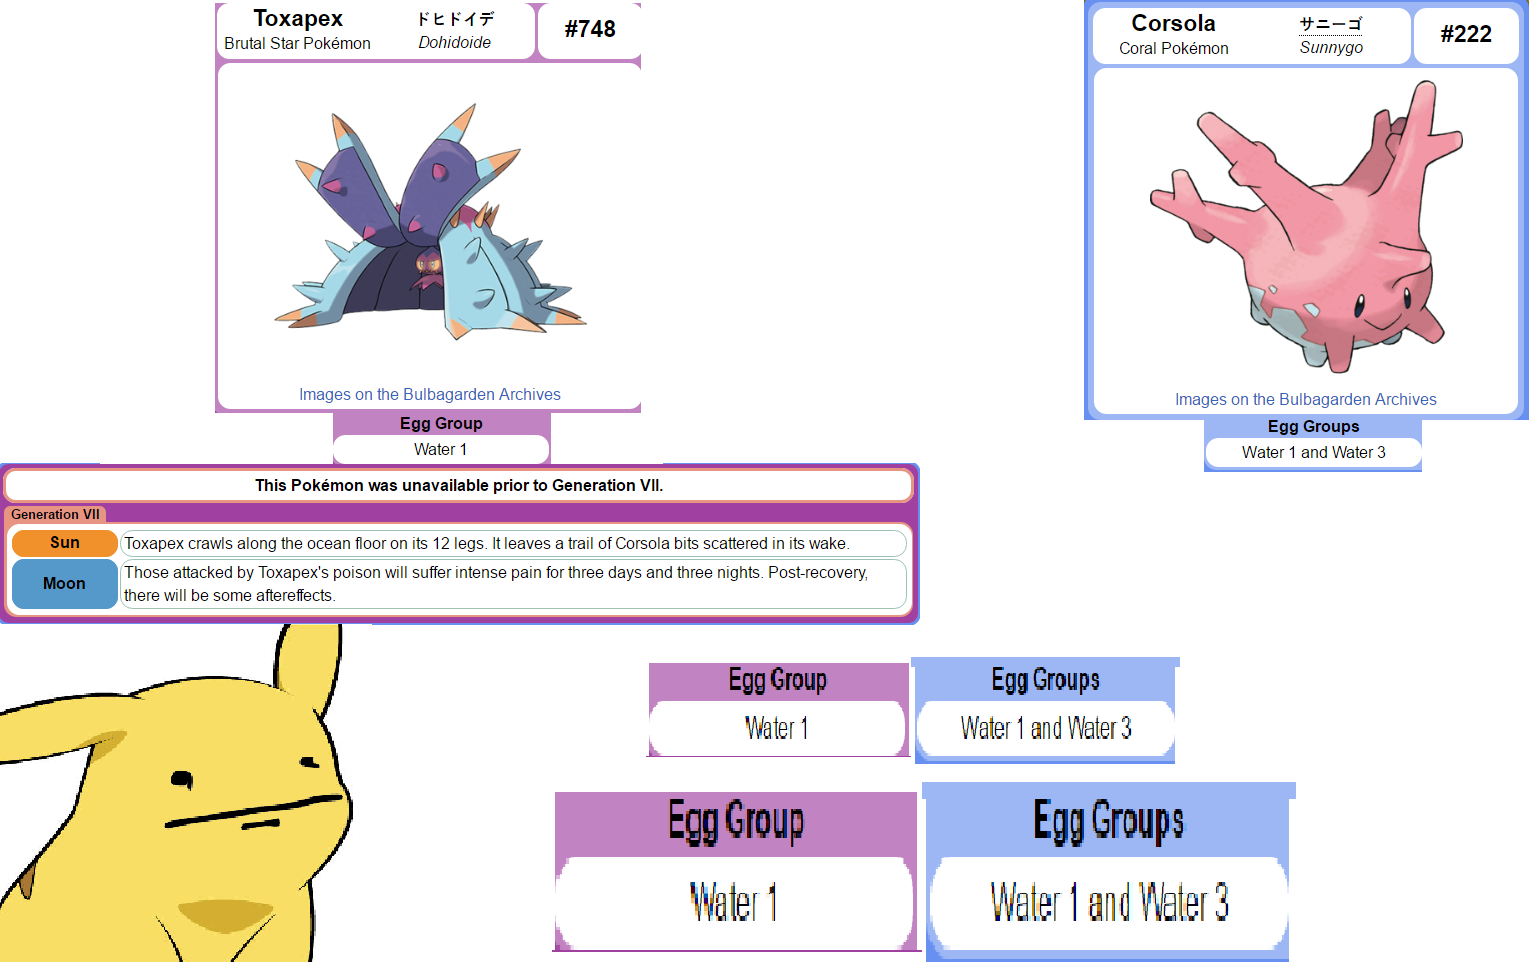 apparently toxapex can breed with corsola its prey pokémon